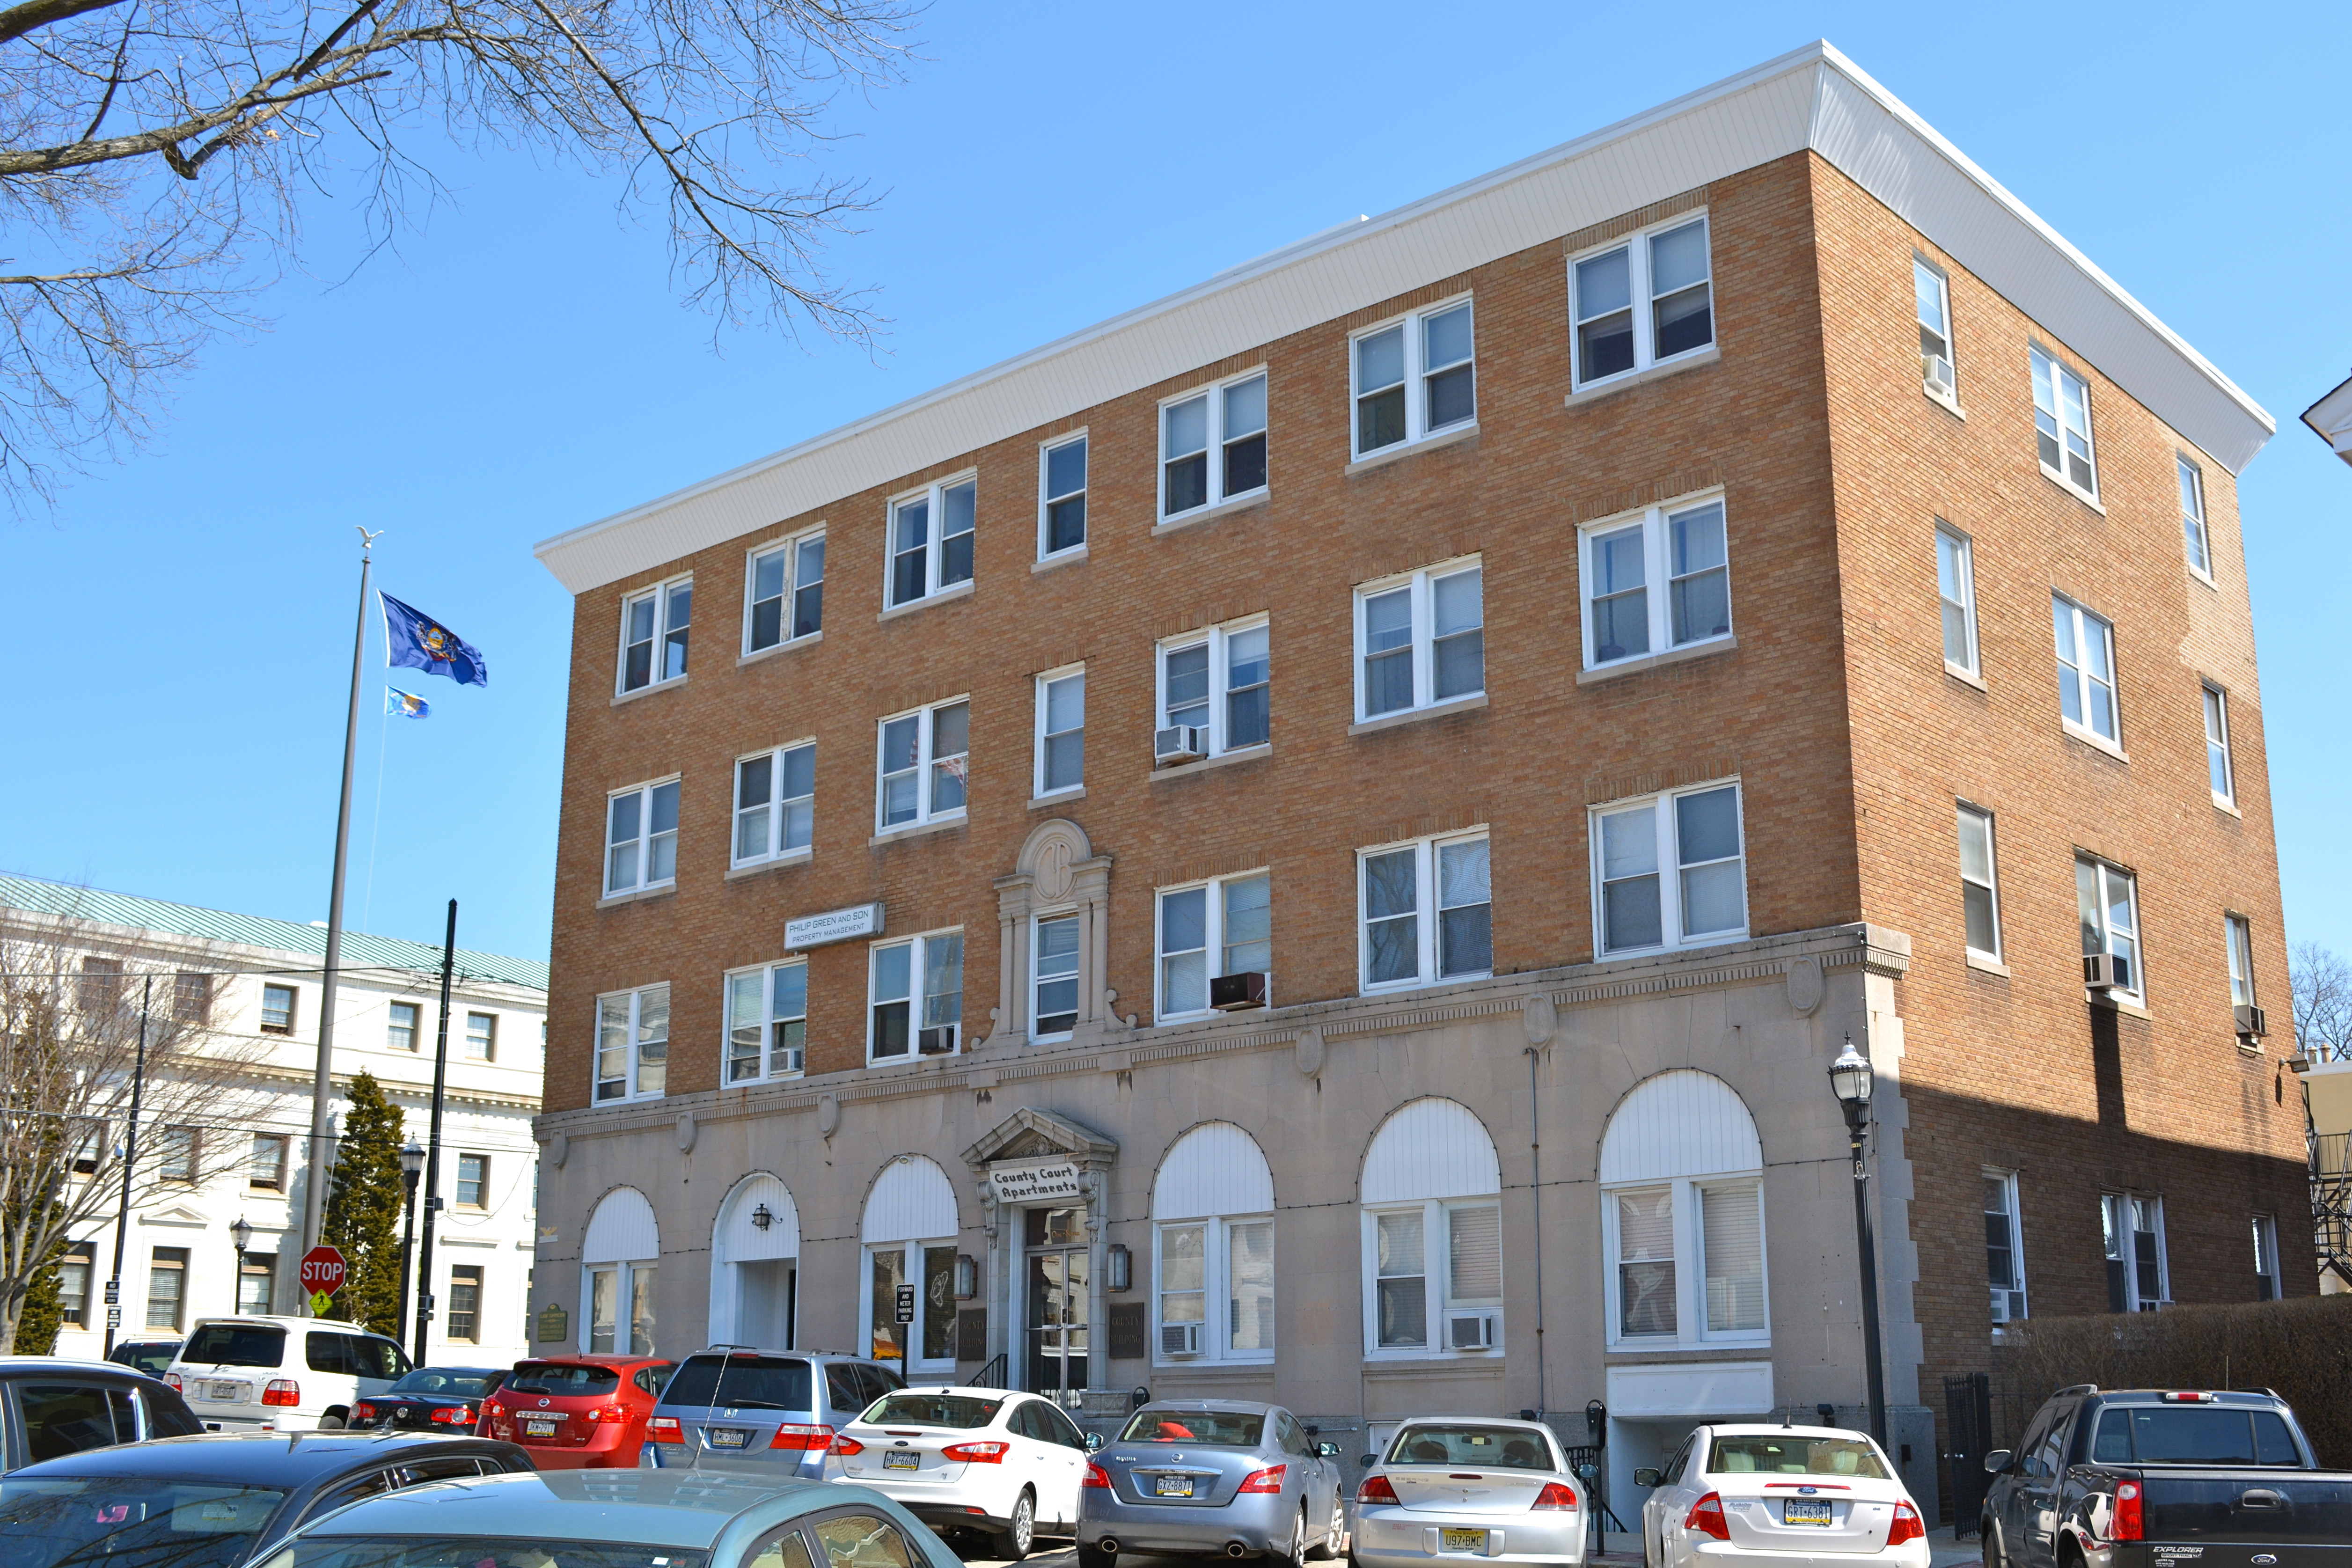 The building broken into by the Citizen's Commission to Investigate the FBI, at One Veterans Square, Media, Pennsylvania. A brown brick building with cars in front of it.